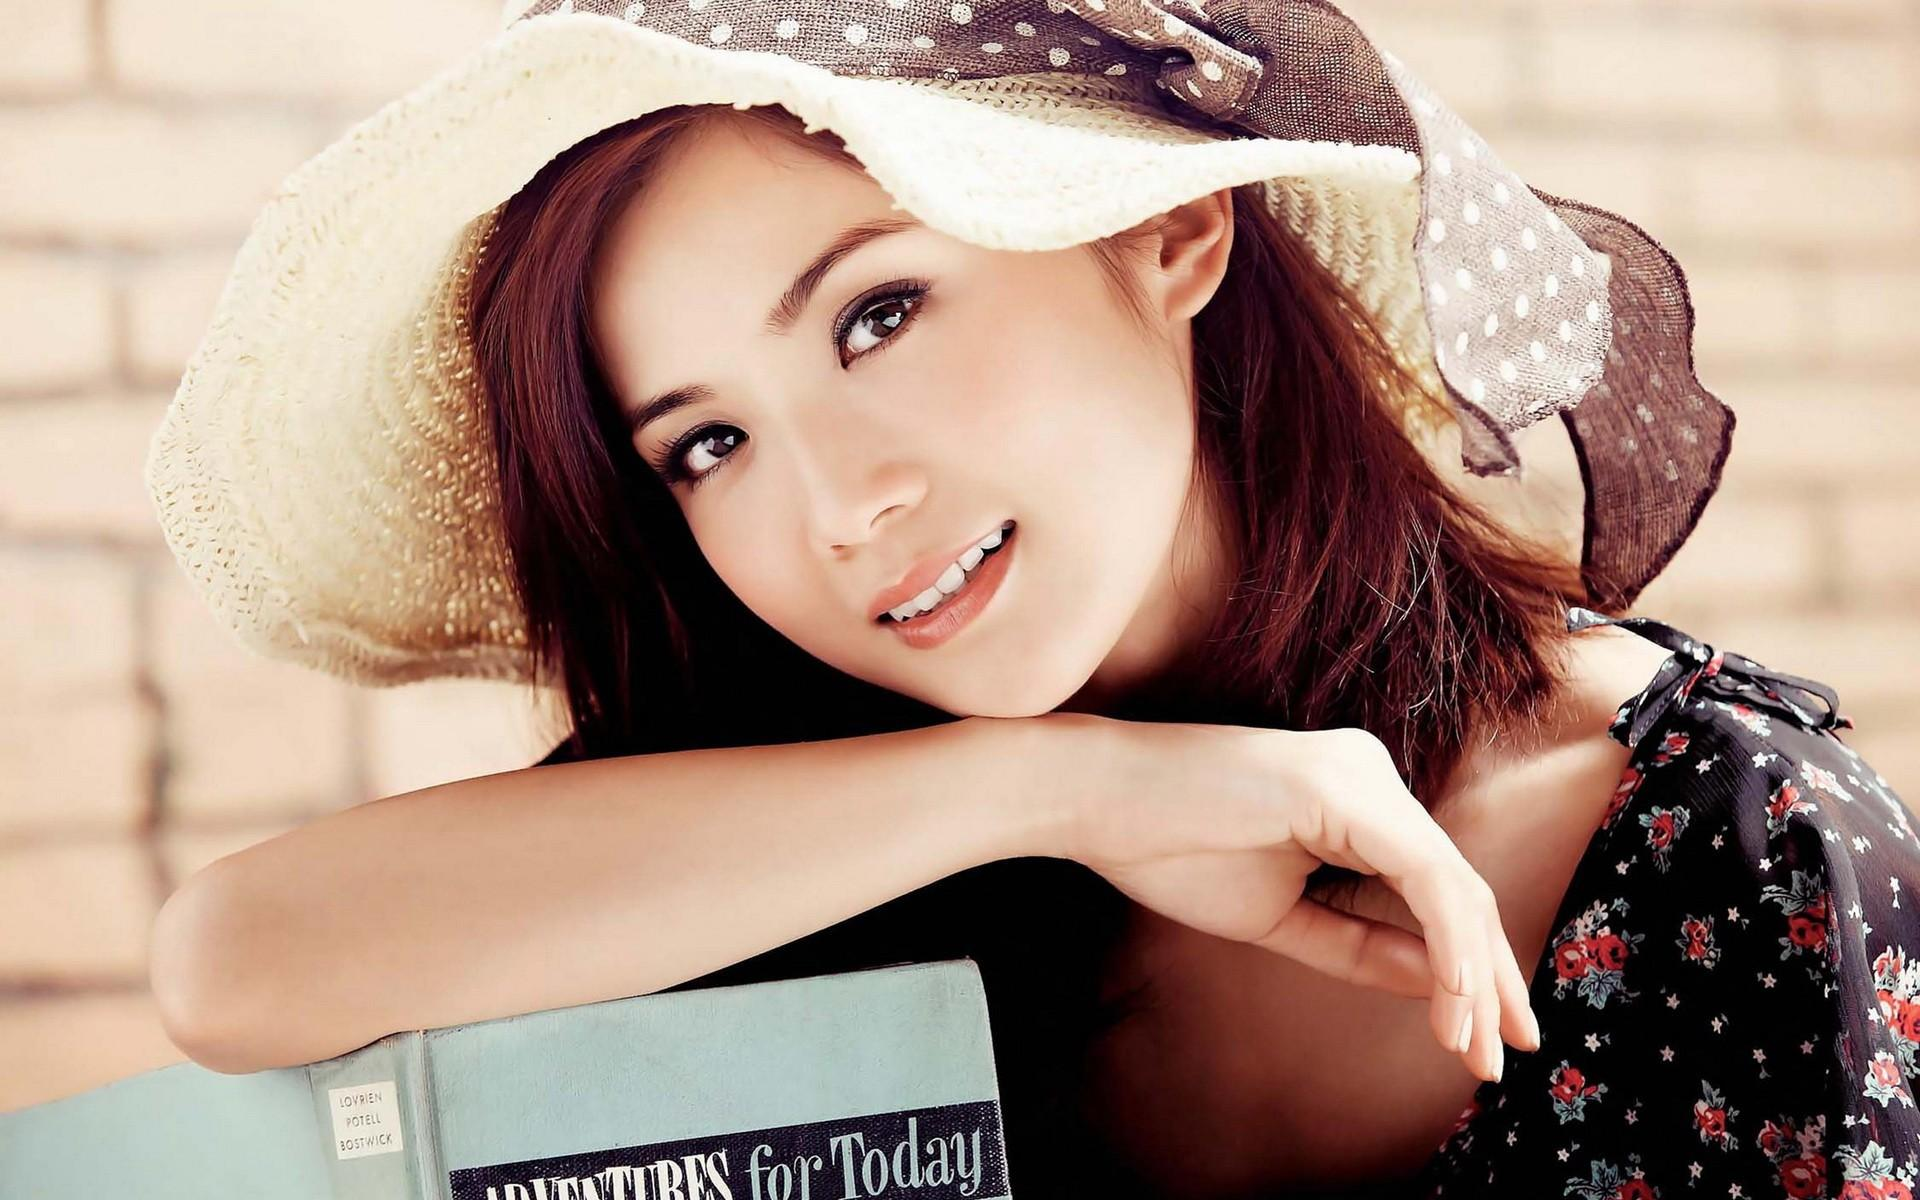 Asian Beauty Girl Wallpapers Wallpaper Cave